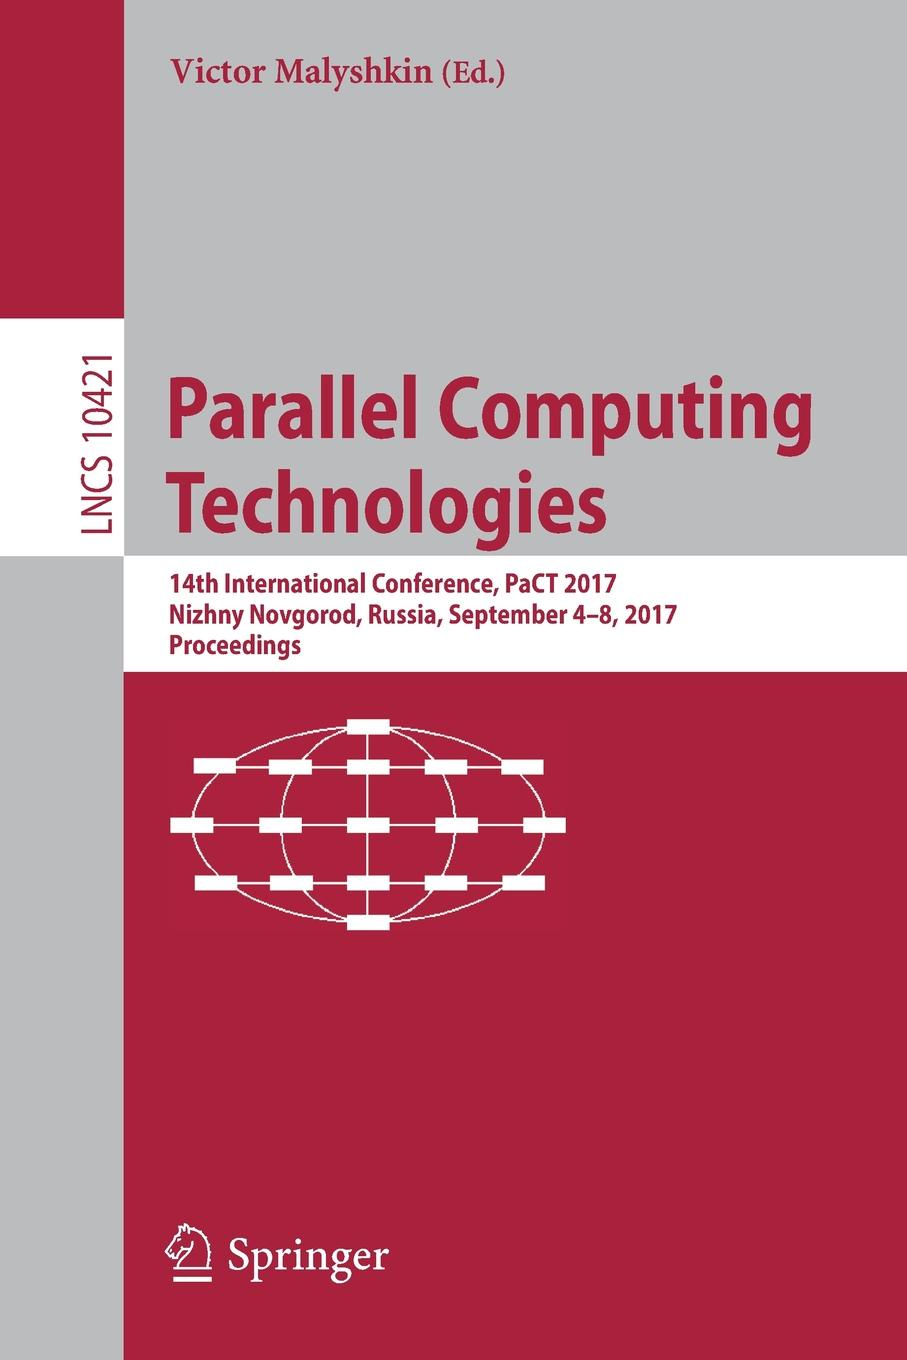 Parallel Computing Technologies. 14th International Conference, PaCT 2017, Nizhny Novgorod, Russia, September 4-8, 2017, Proceedings blood pact